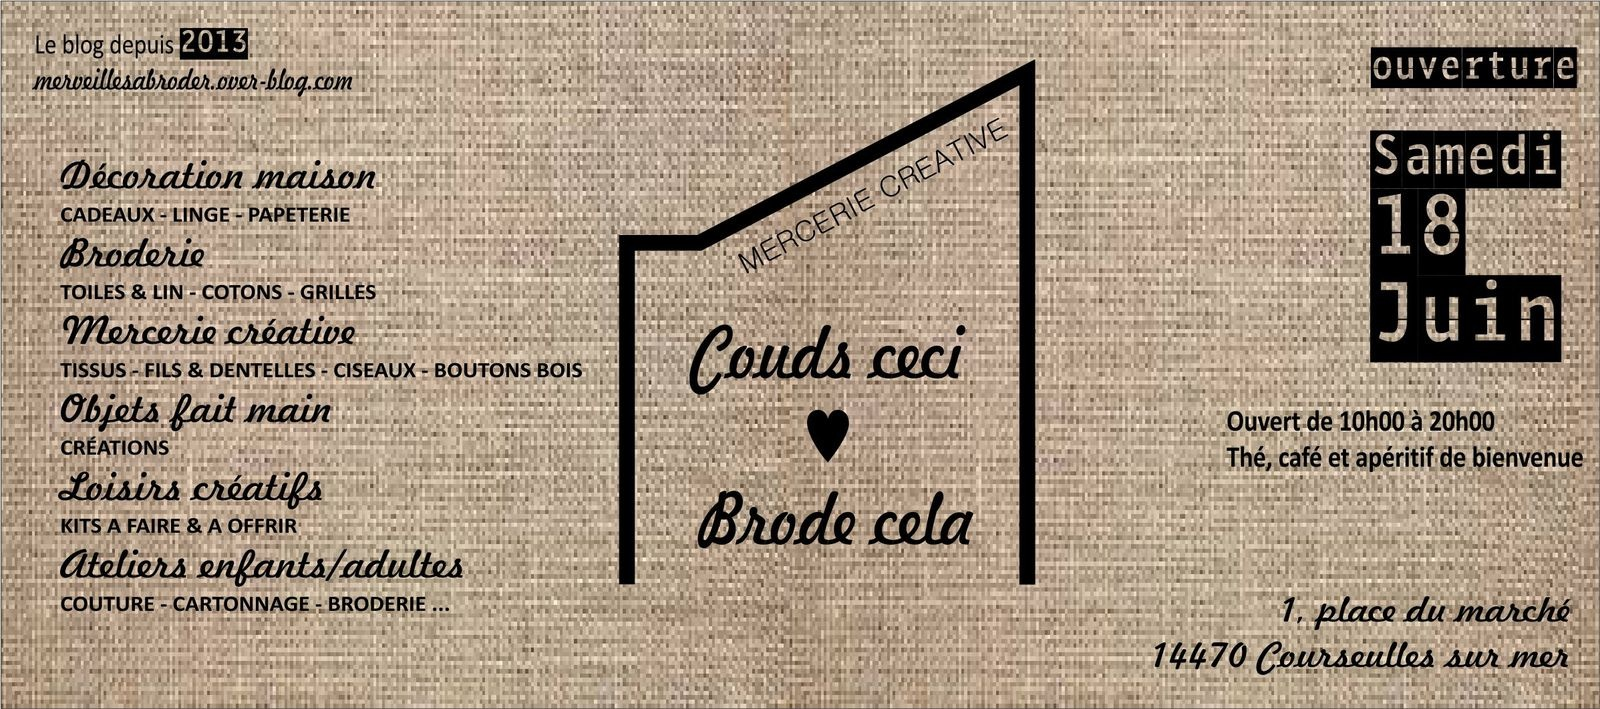 Couds ceci .... 1